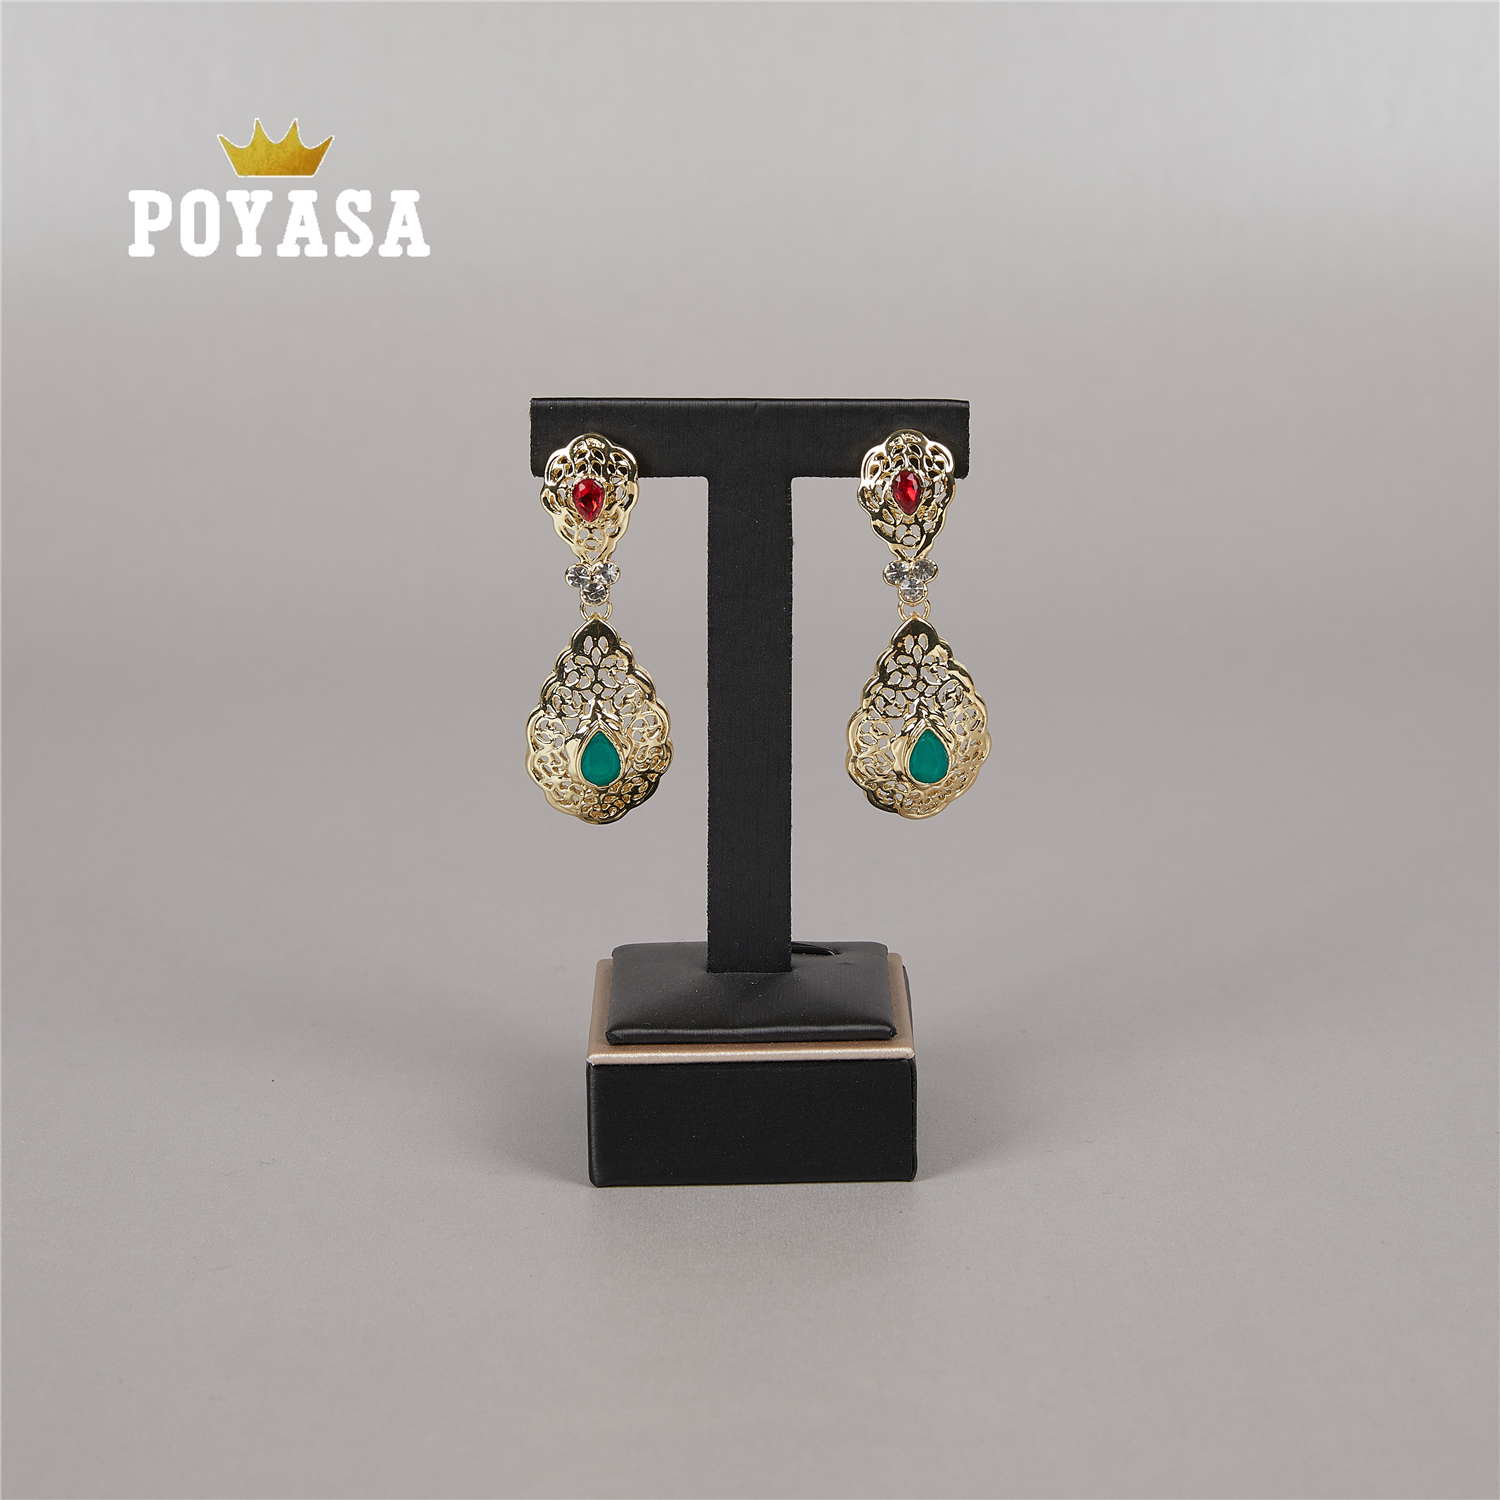 2020 April Gold Color Earring Red And Green Stone Fashion Jewelry Alloy Earring